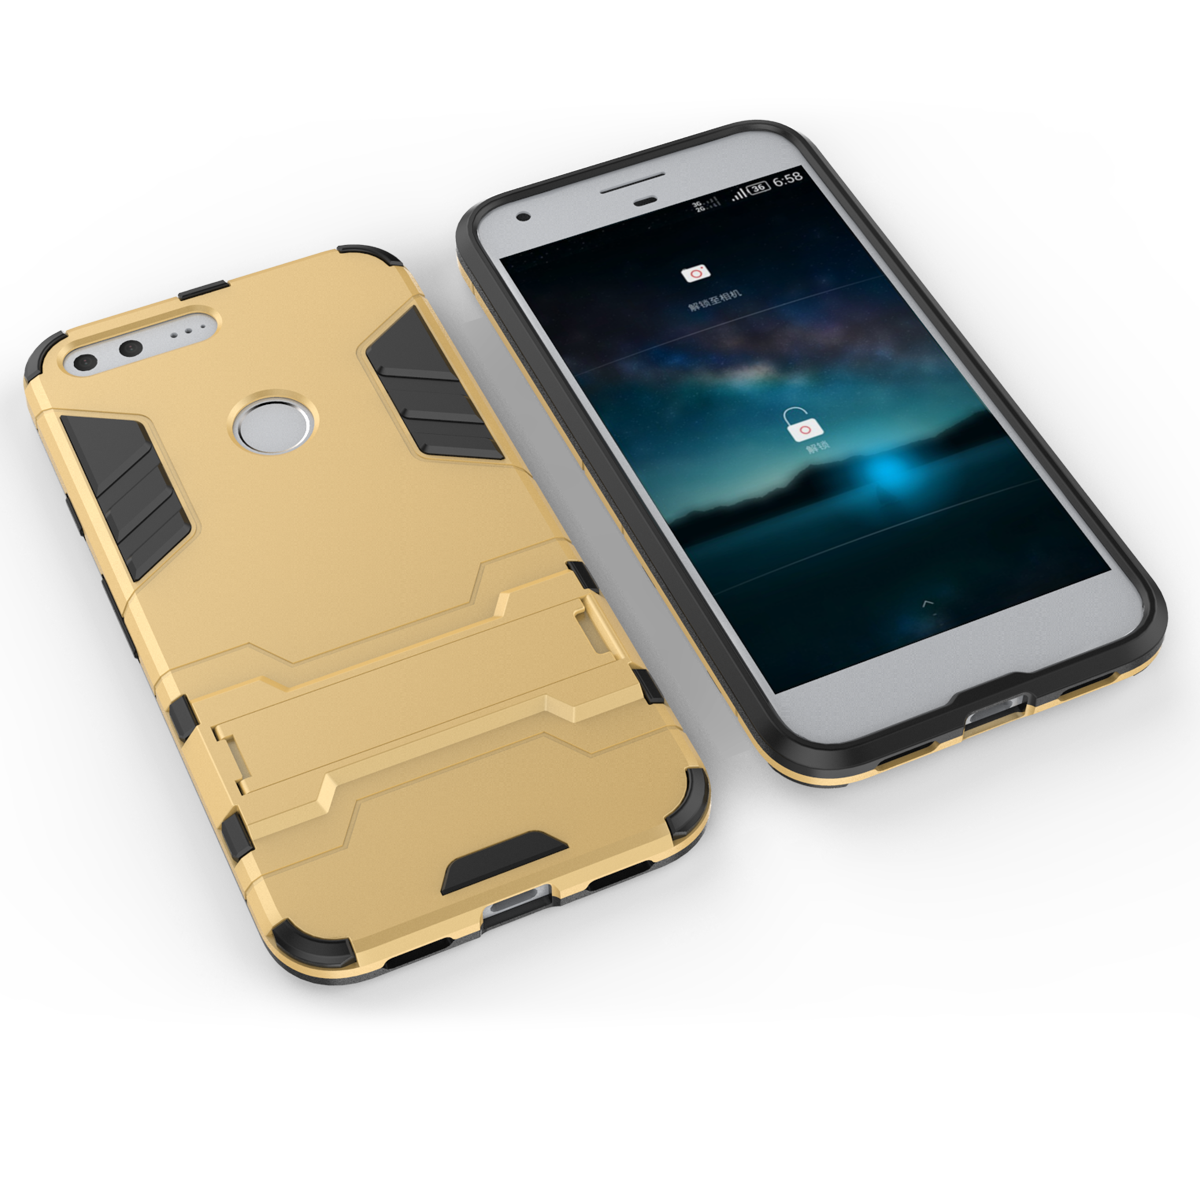 Defender Kickstand Protective Cover Case For Google Pixel XL 5.5inch - Gold